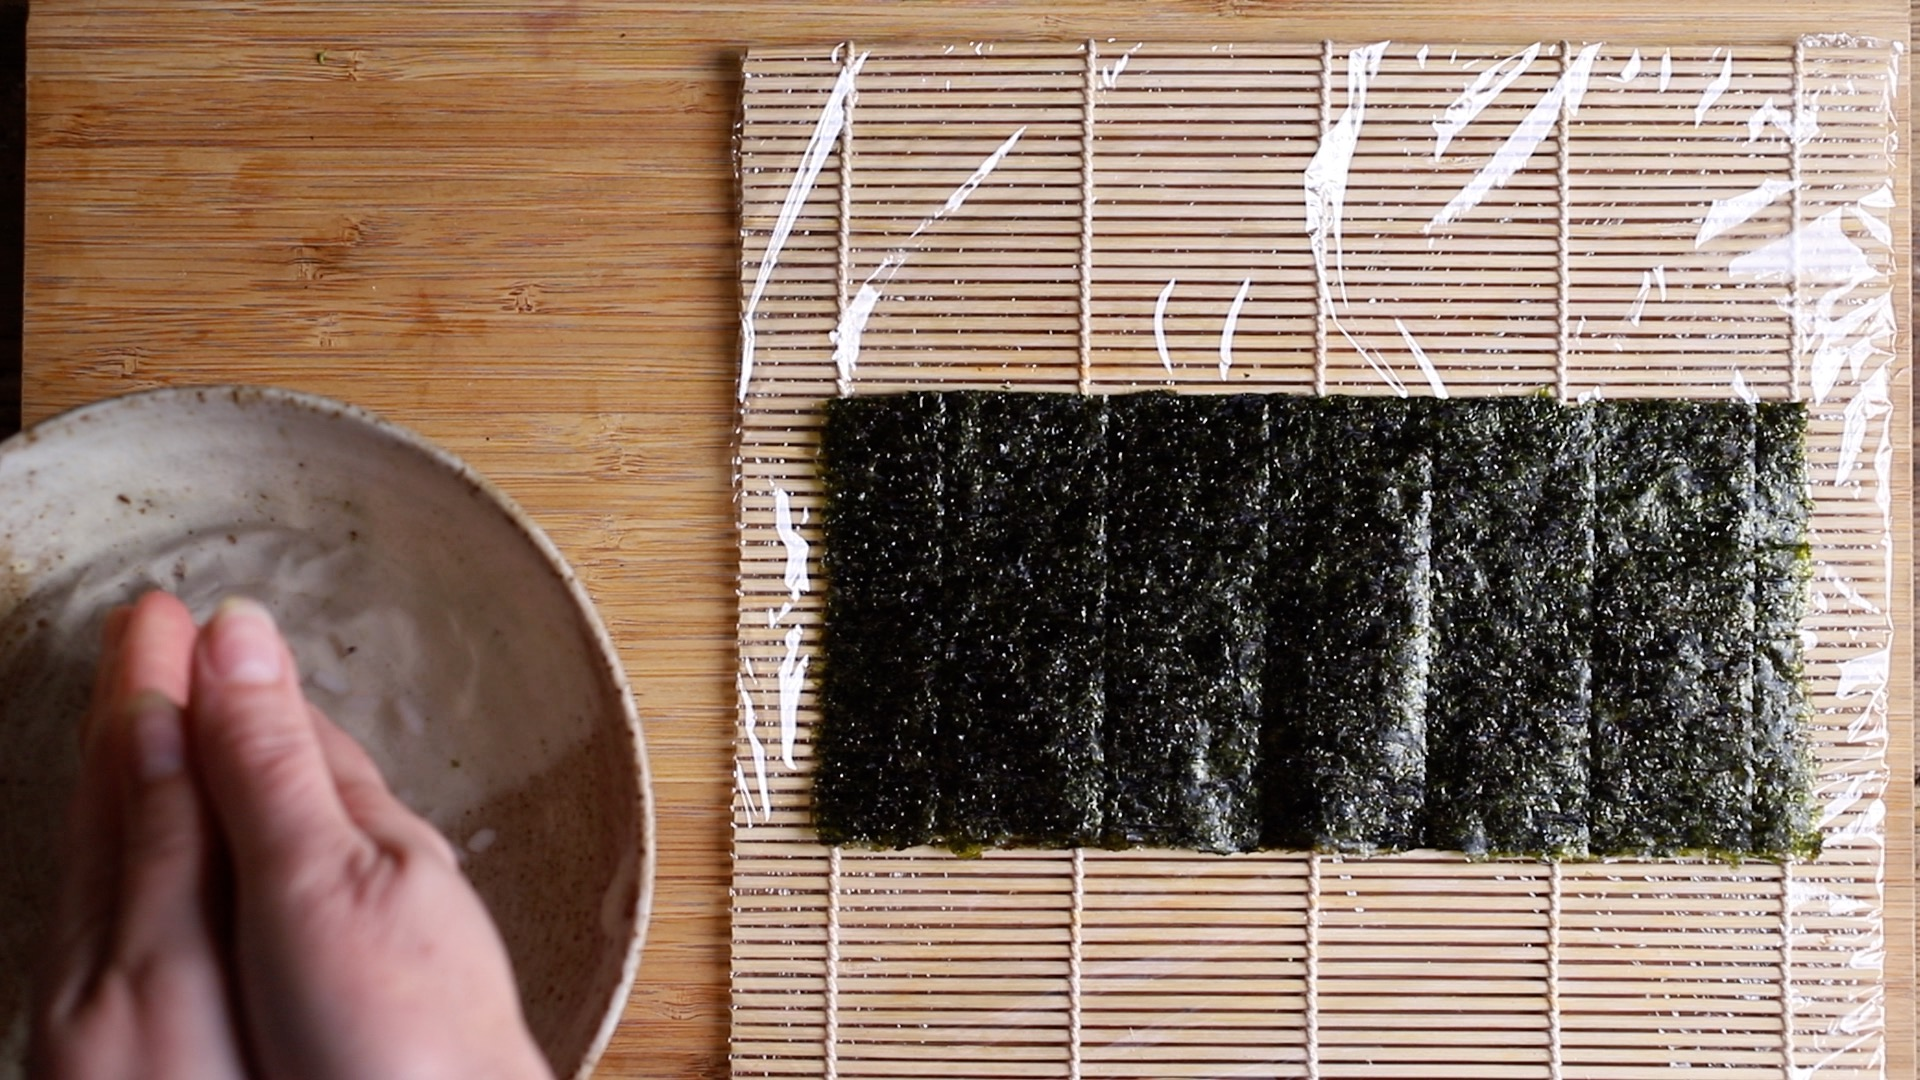 seaweed sheet in centre of bamboo mat